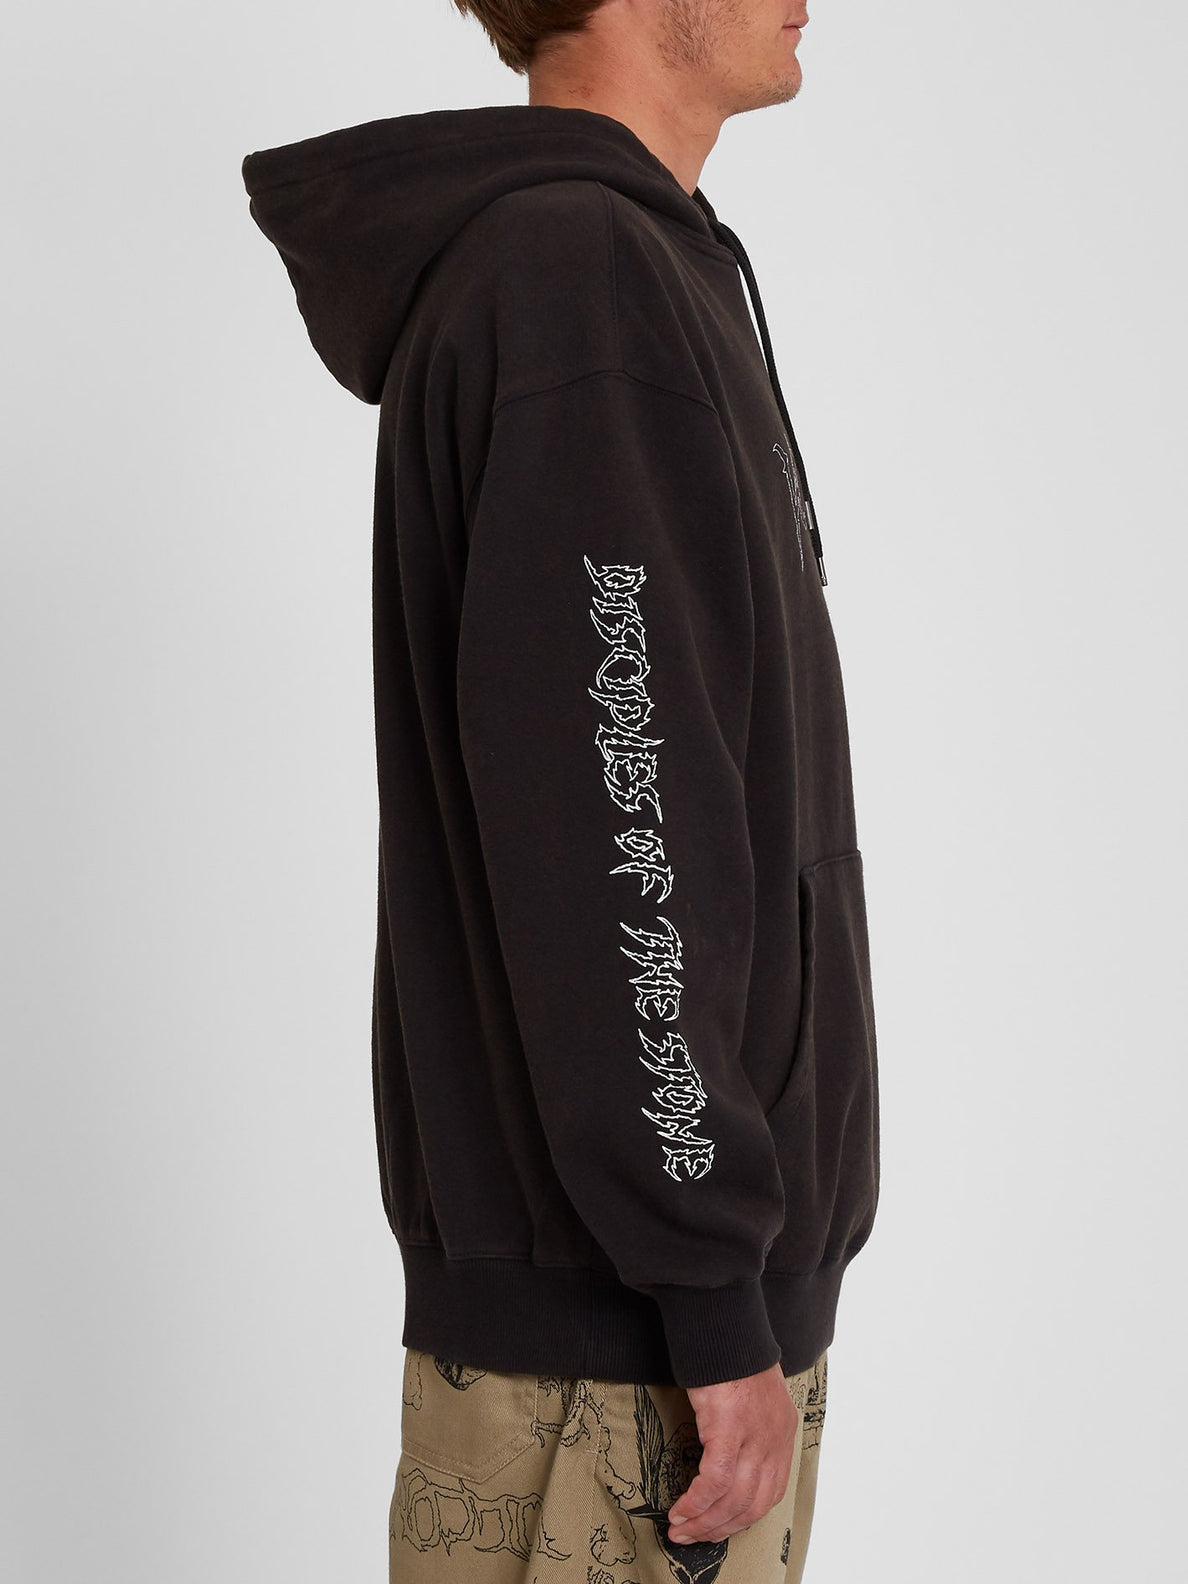 Something Out There Hoodie - BLACK (A4142004_BLK) [1]